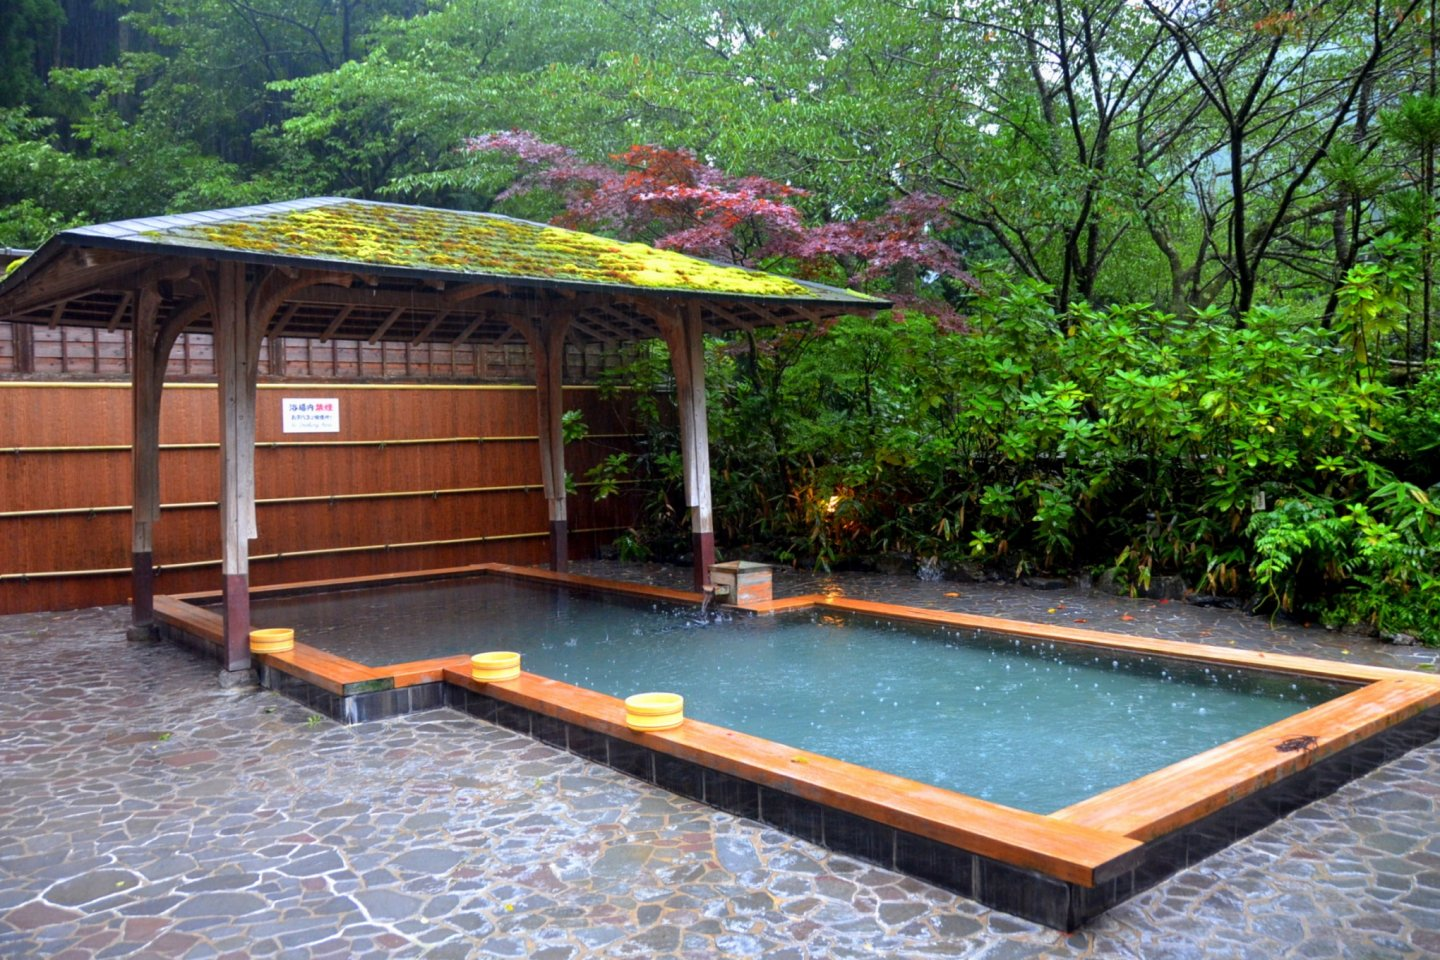 Outdoor bath of Kurama Onsen